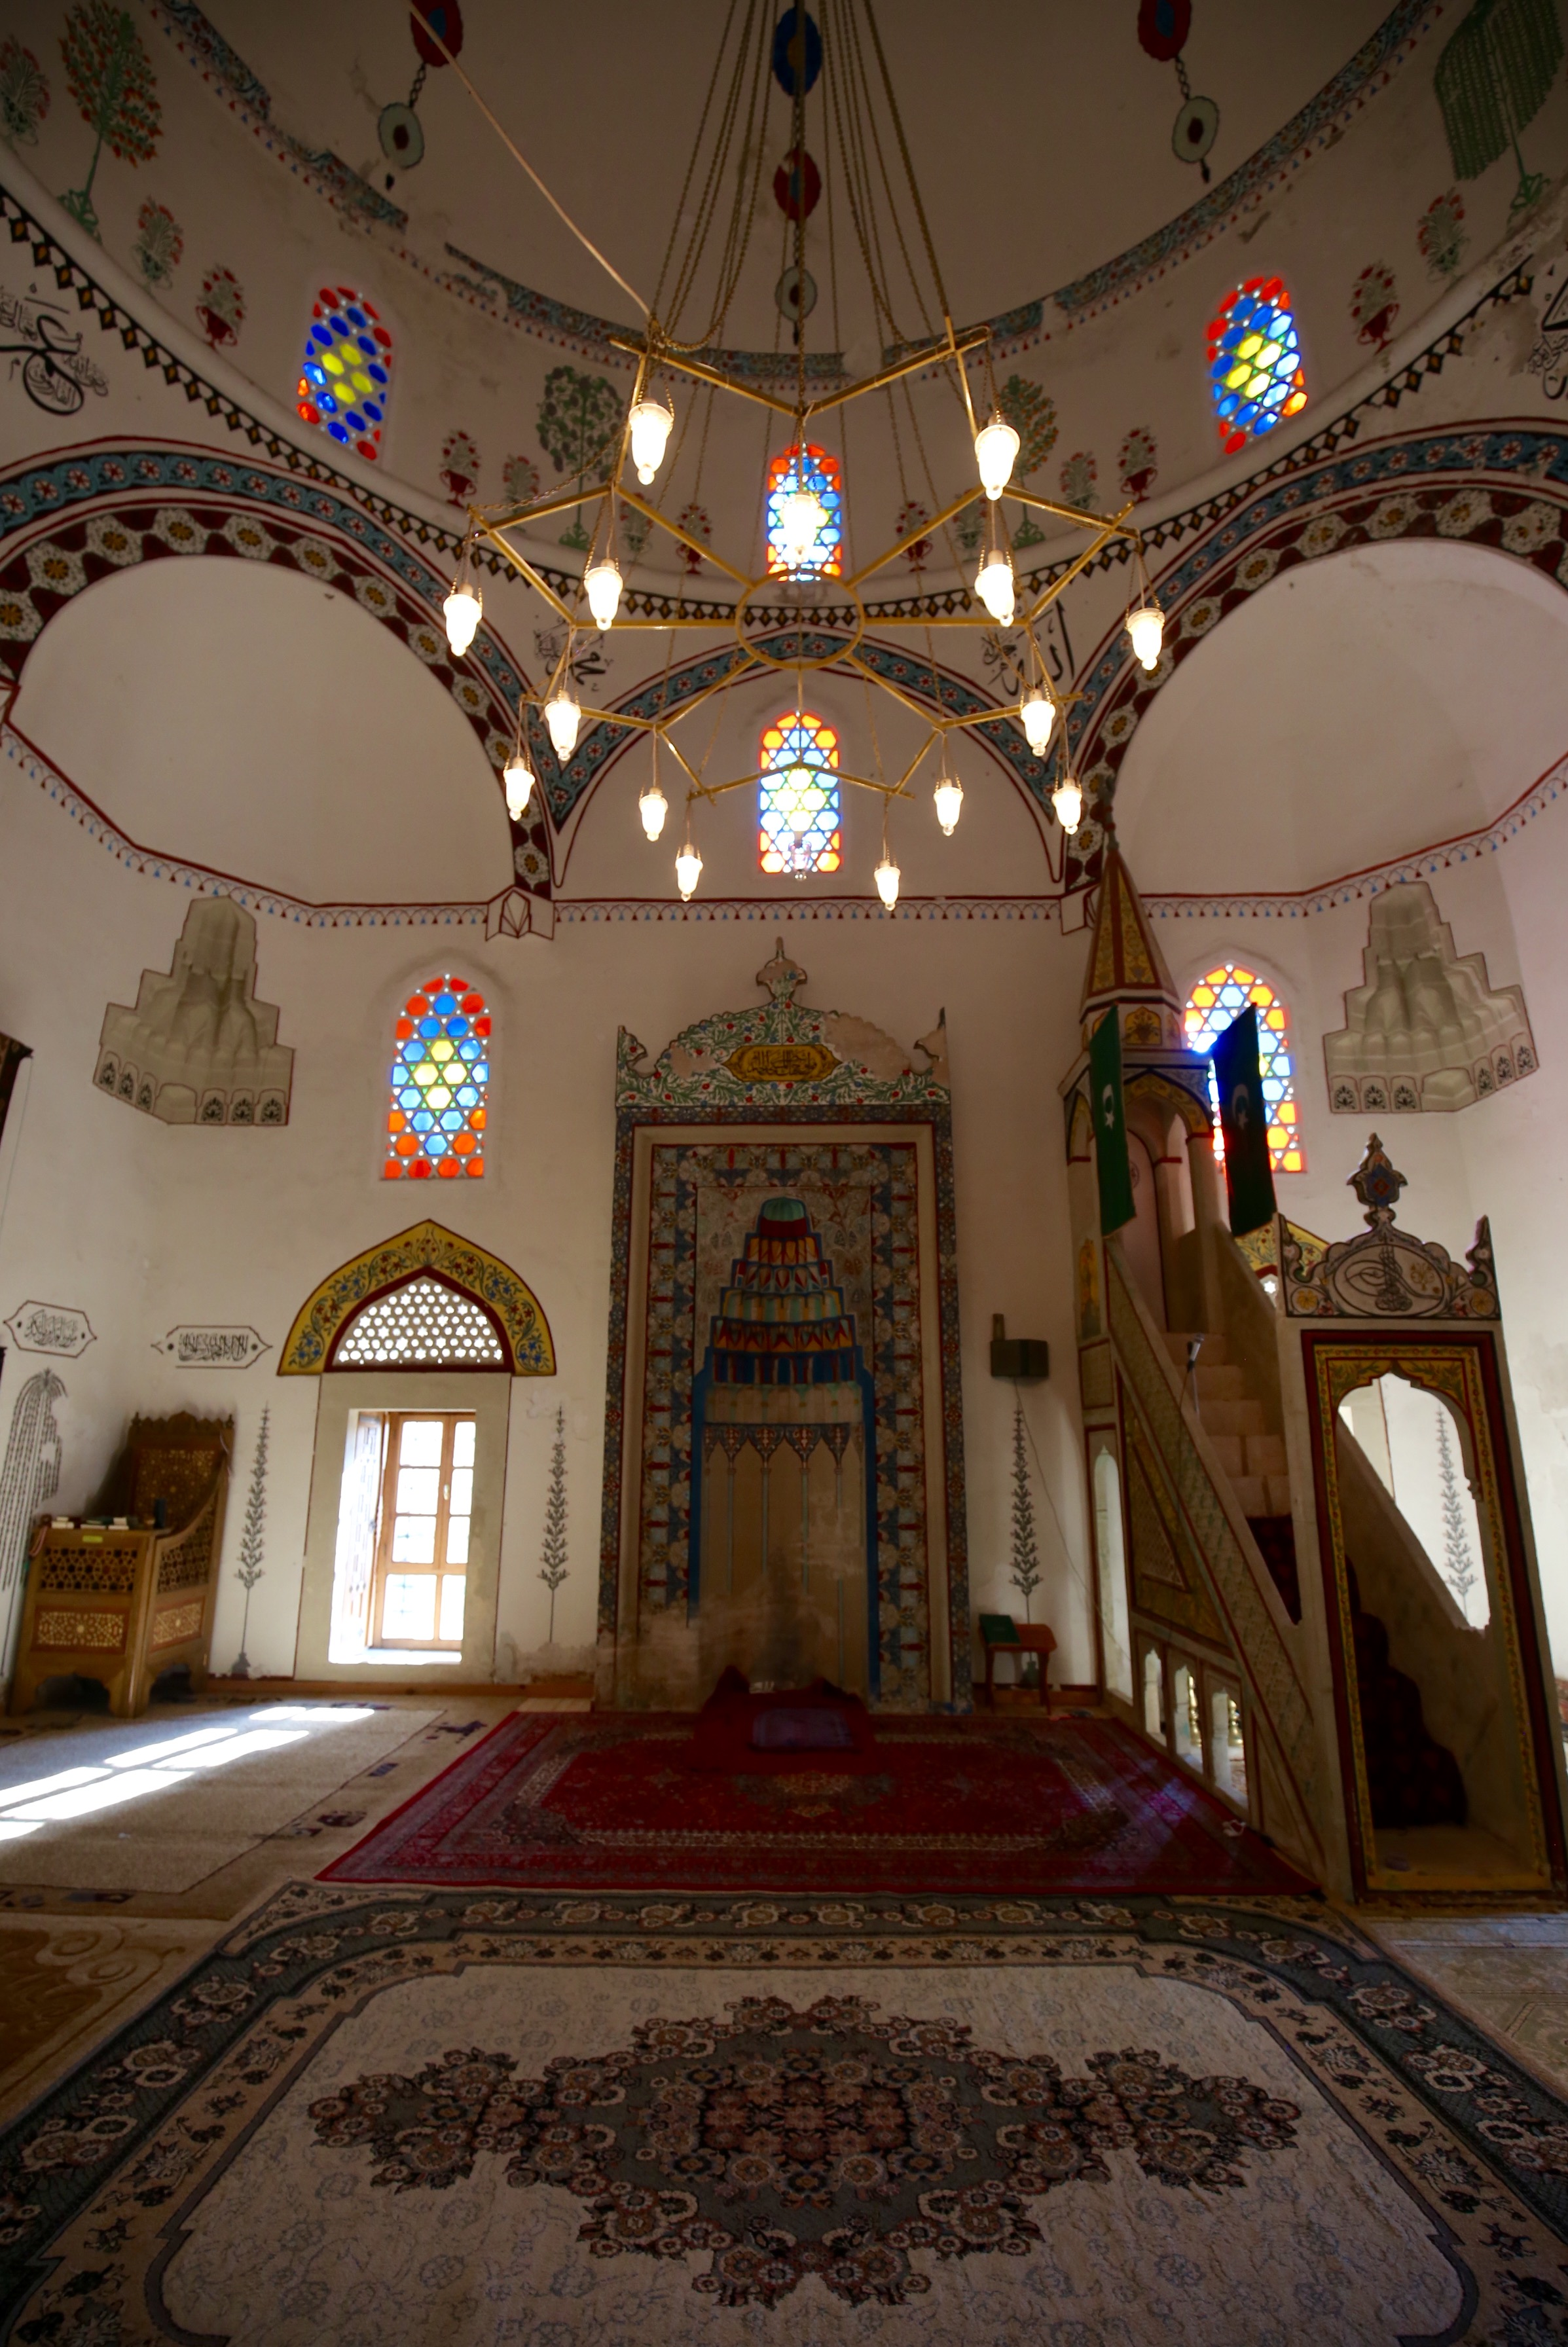 The mosque of Mostar, Hercegovina.